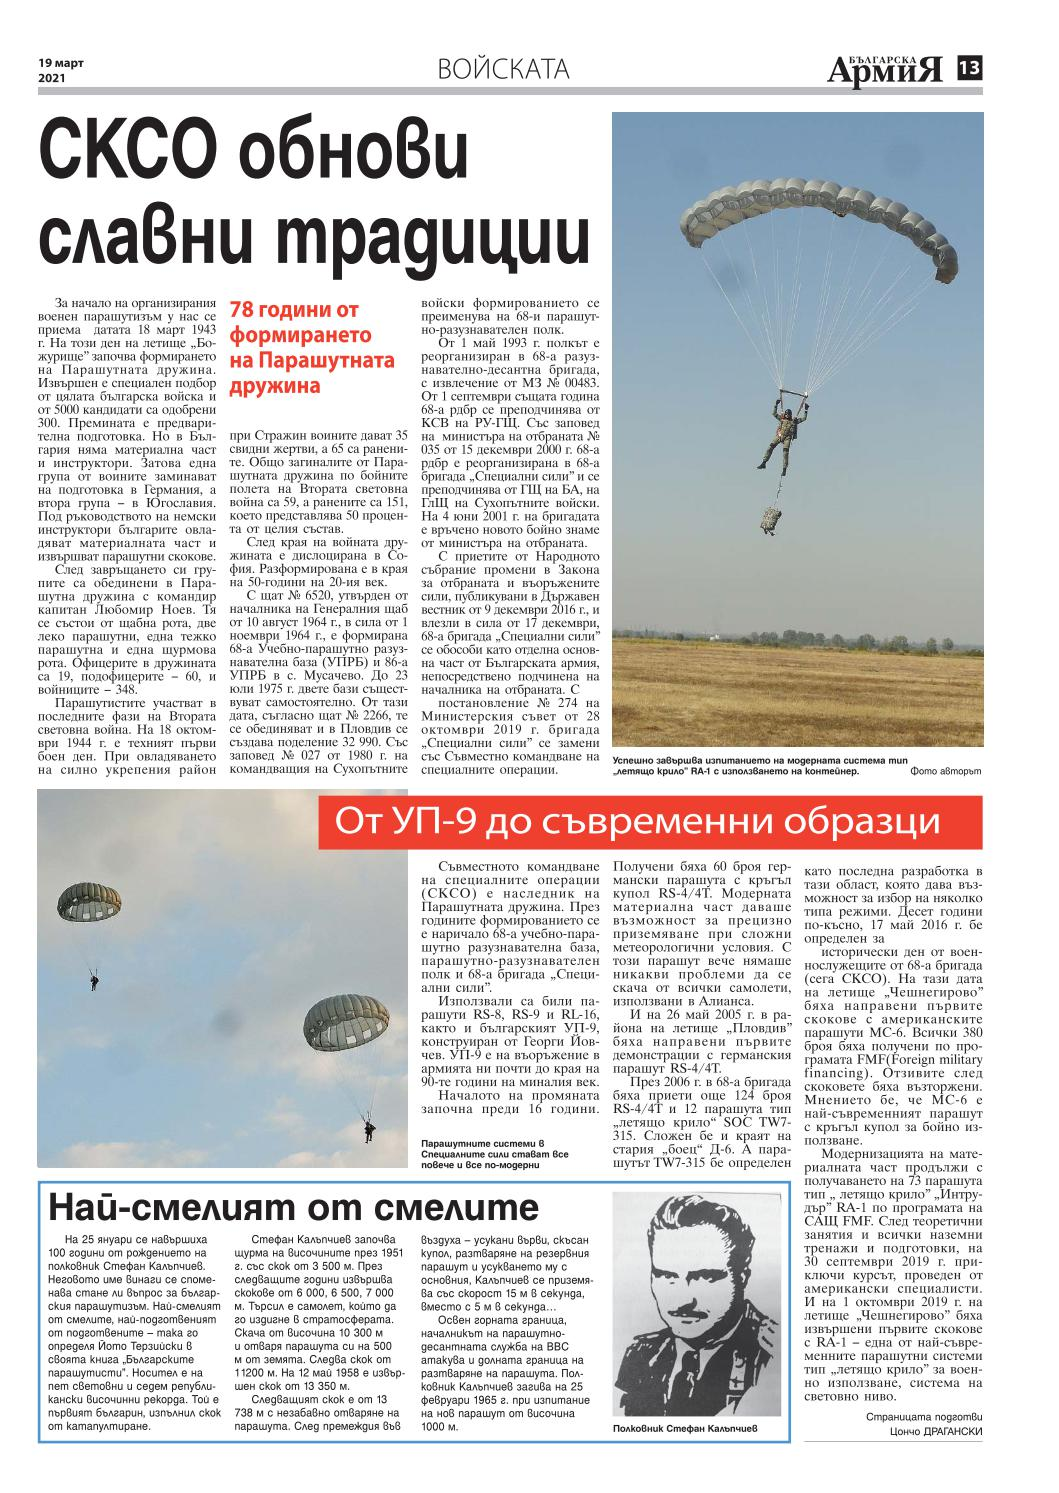 https://armymedia.bg/wp-content/uploads/2021/04/13.page1_-155.jpg